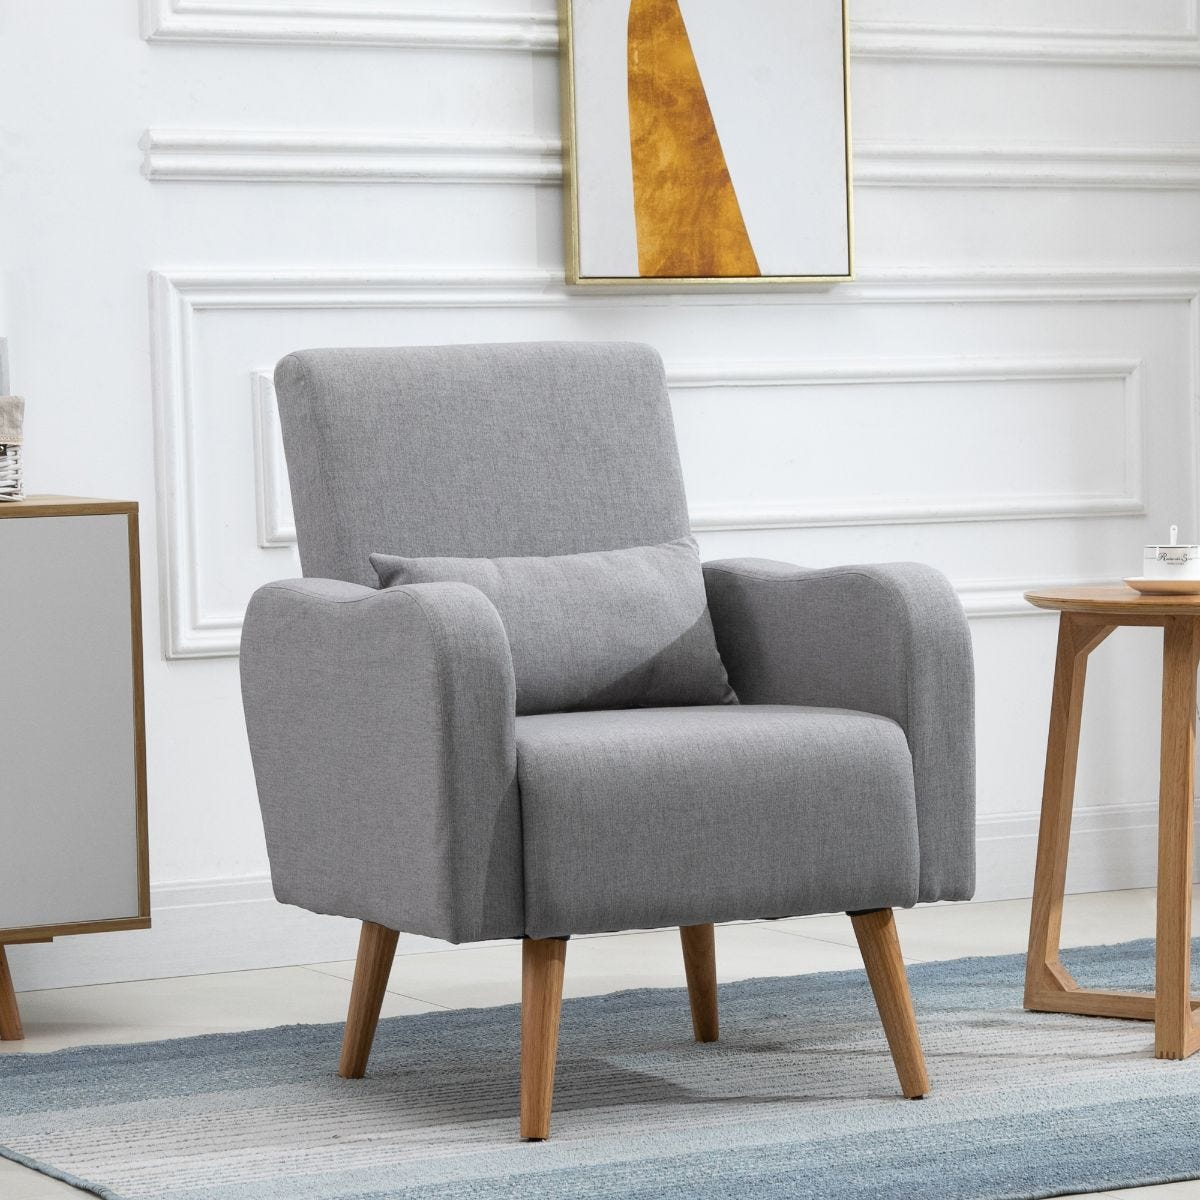 Minimalist Armchair Solid Wood Frame And Legs Faux Linen Grey